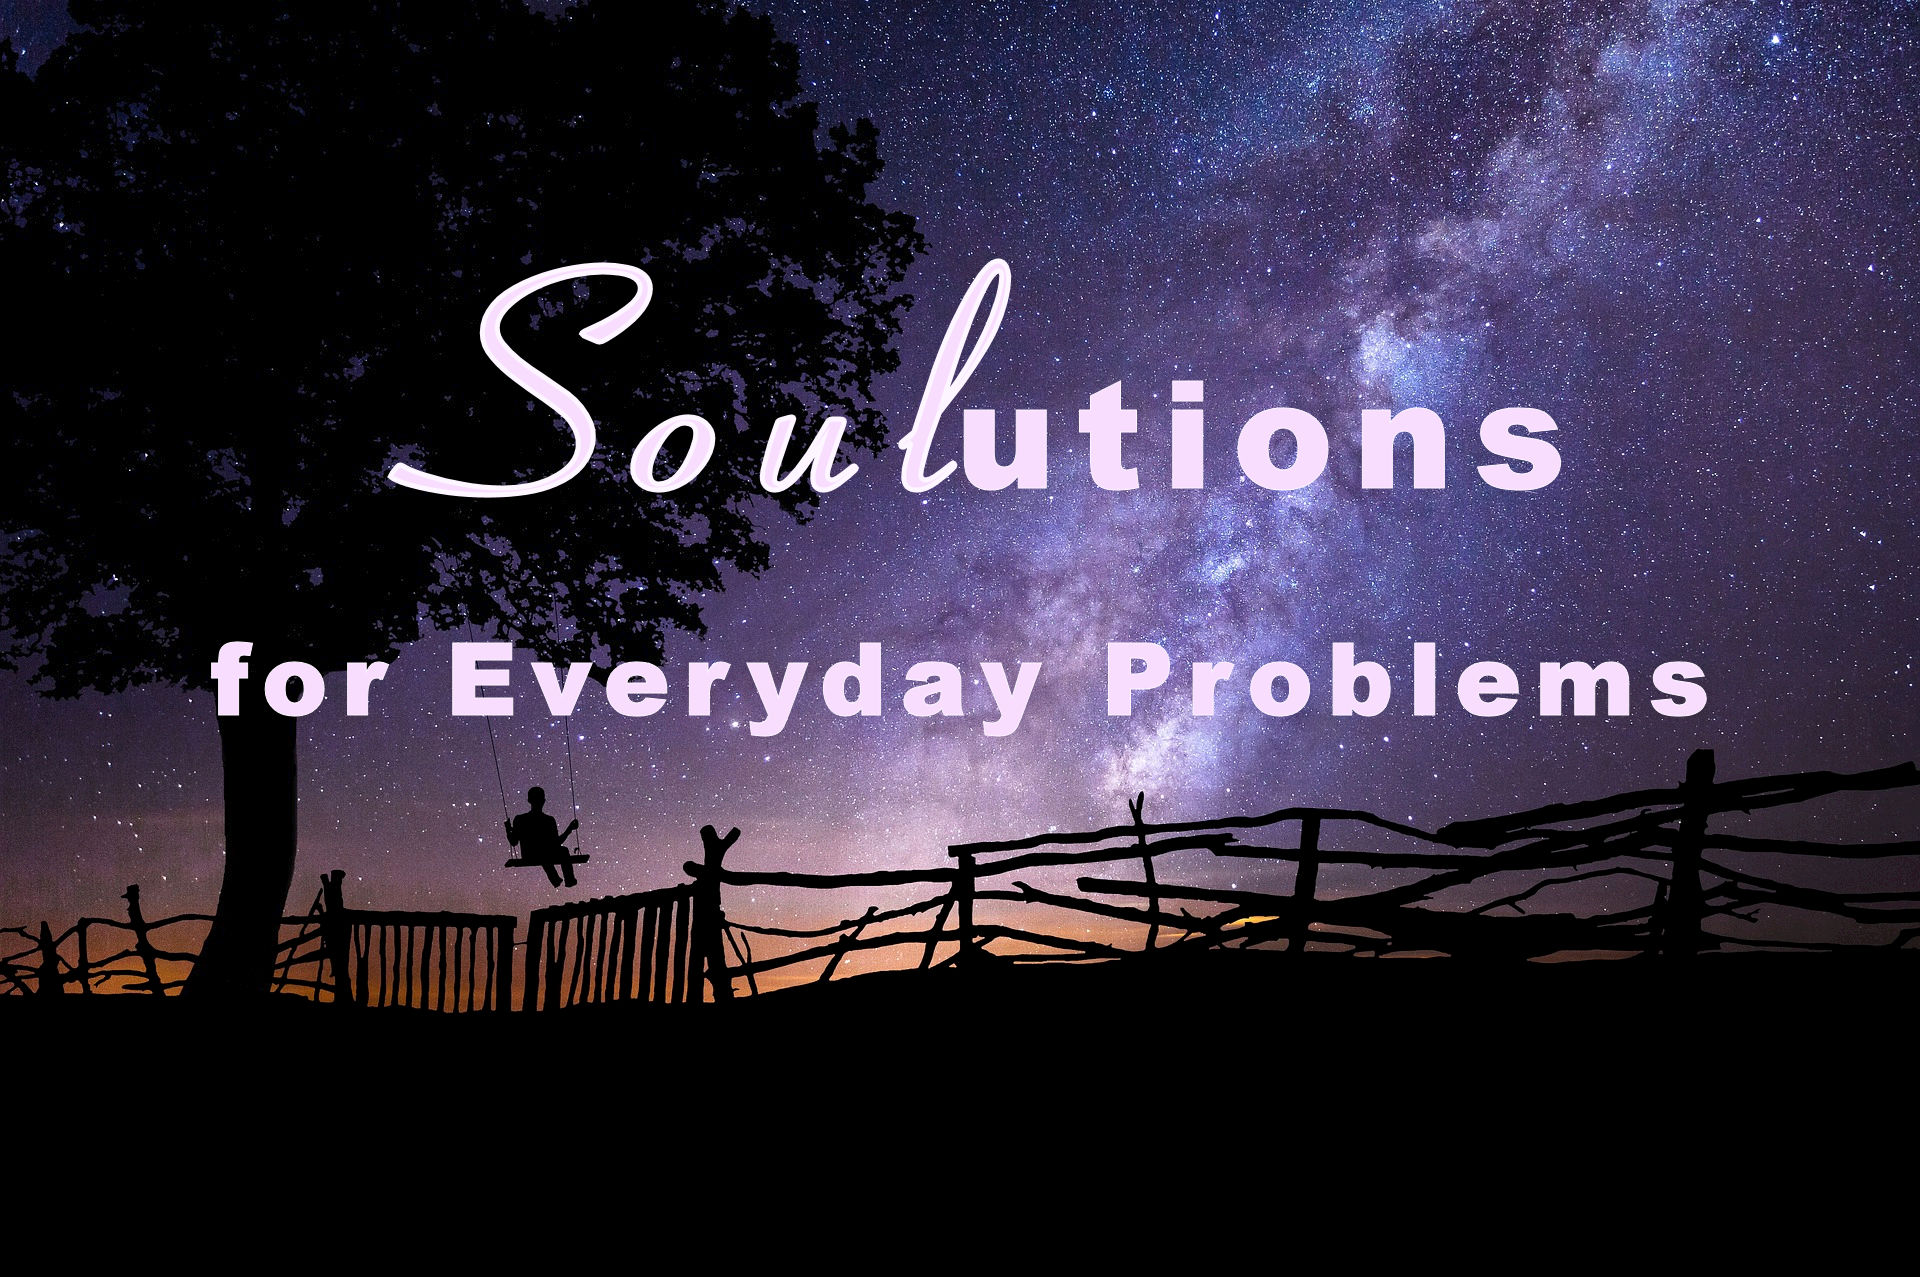 Soulutions for Every Day Problems